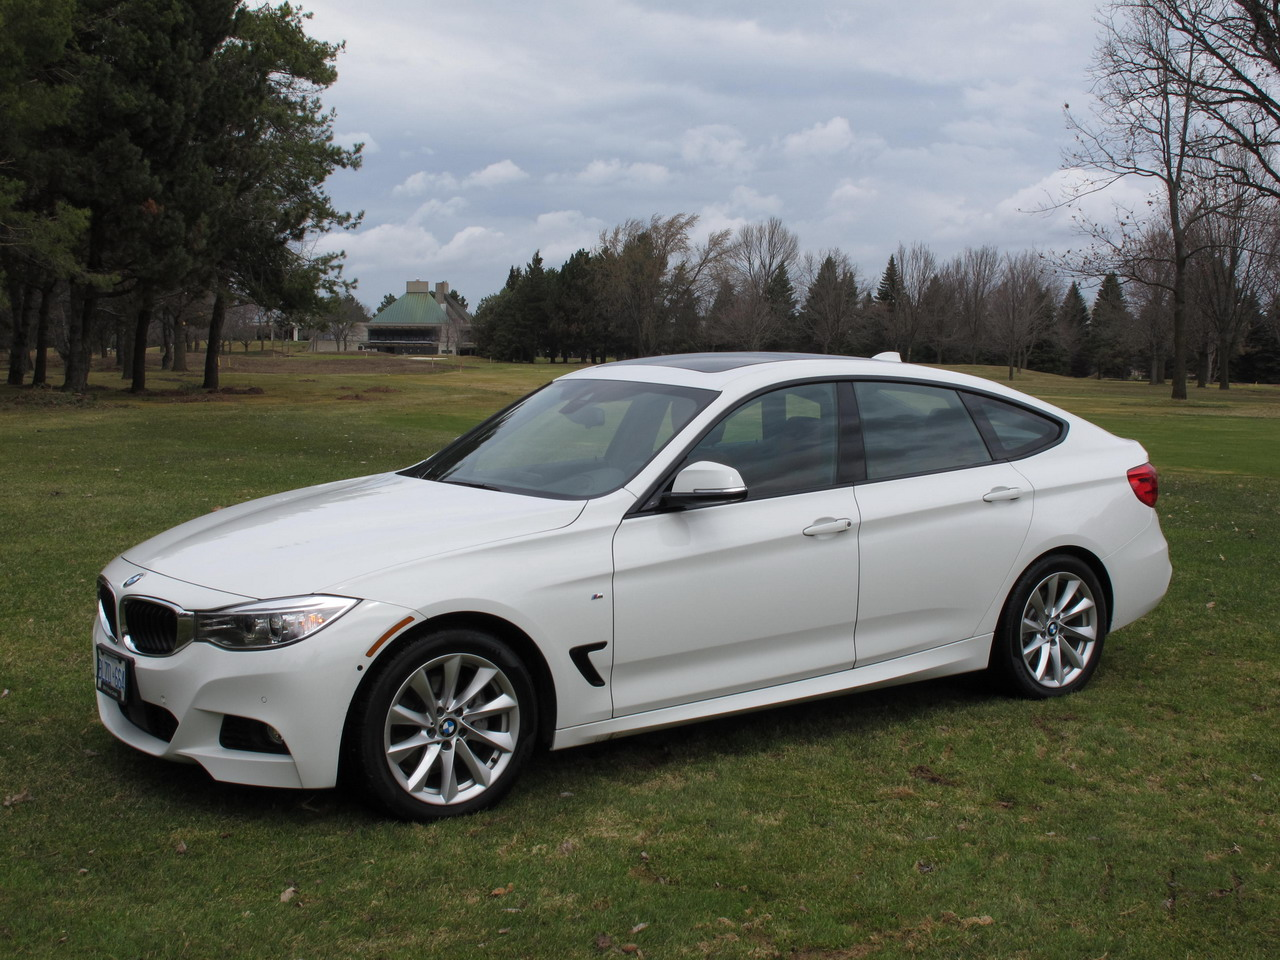 2014 bmw 335i gt white front side view